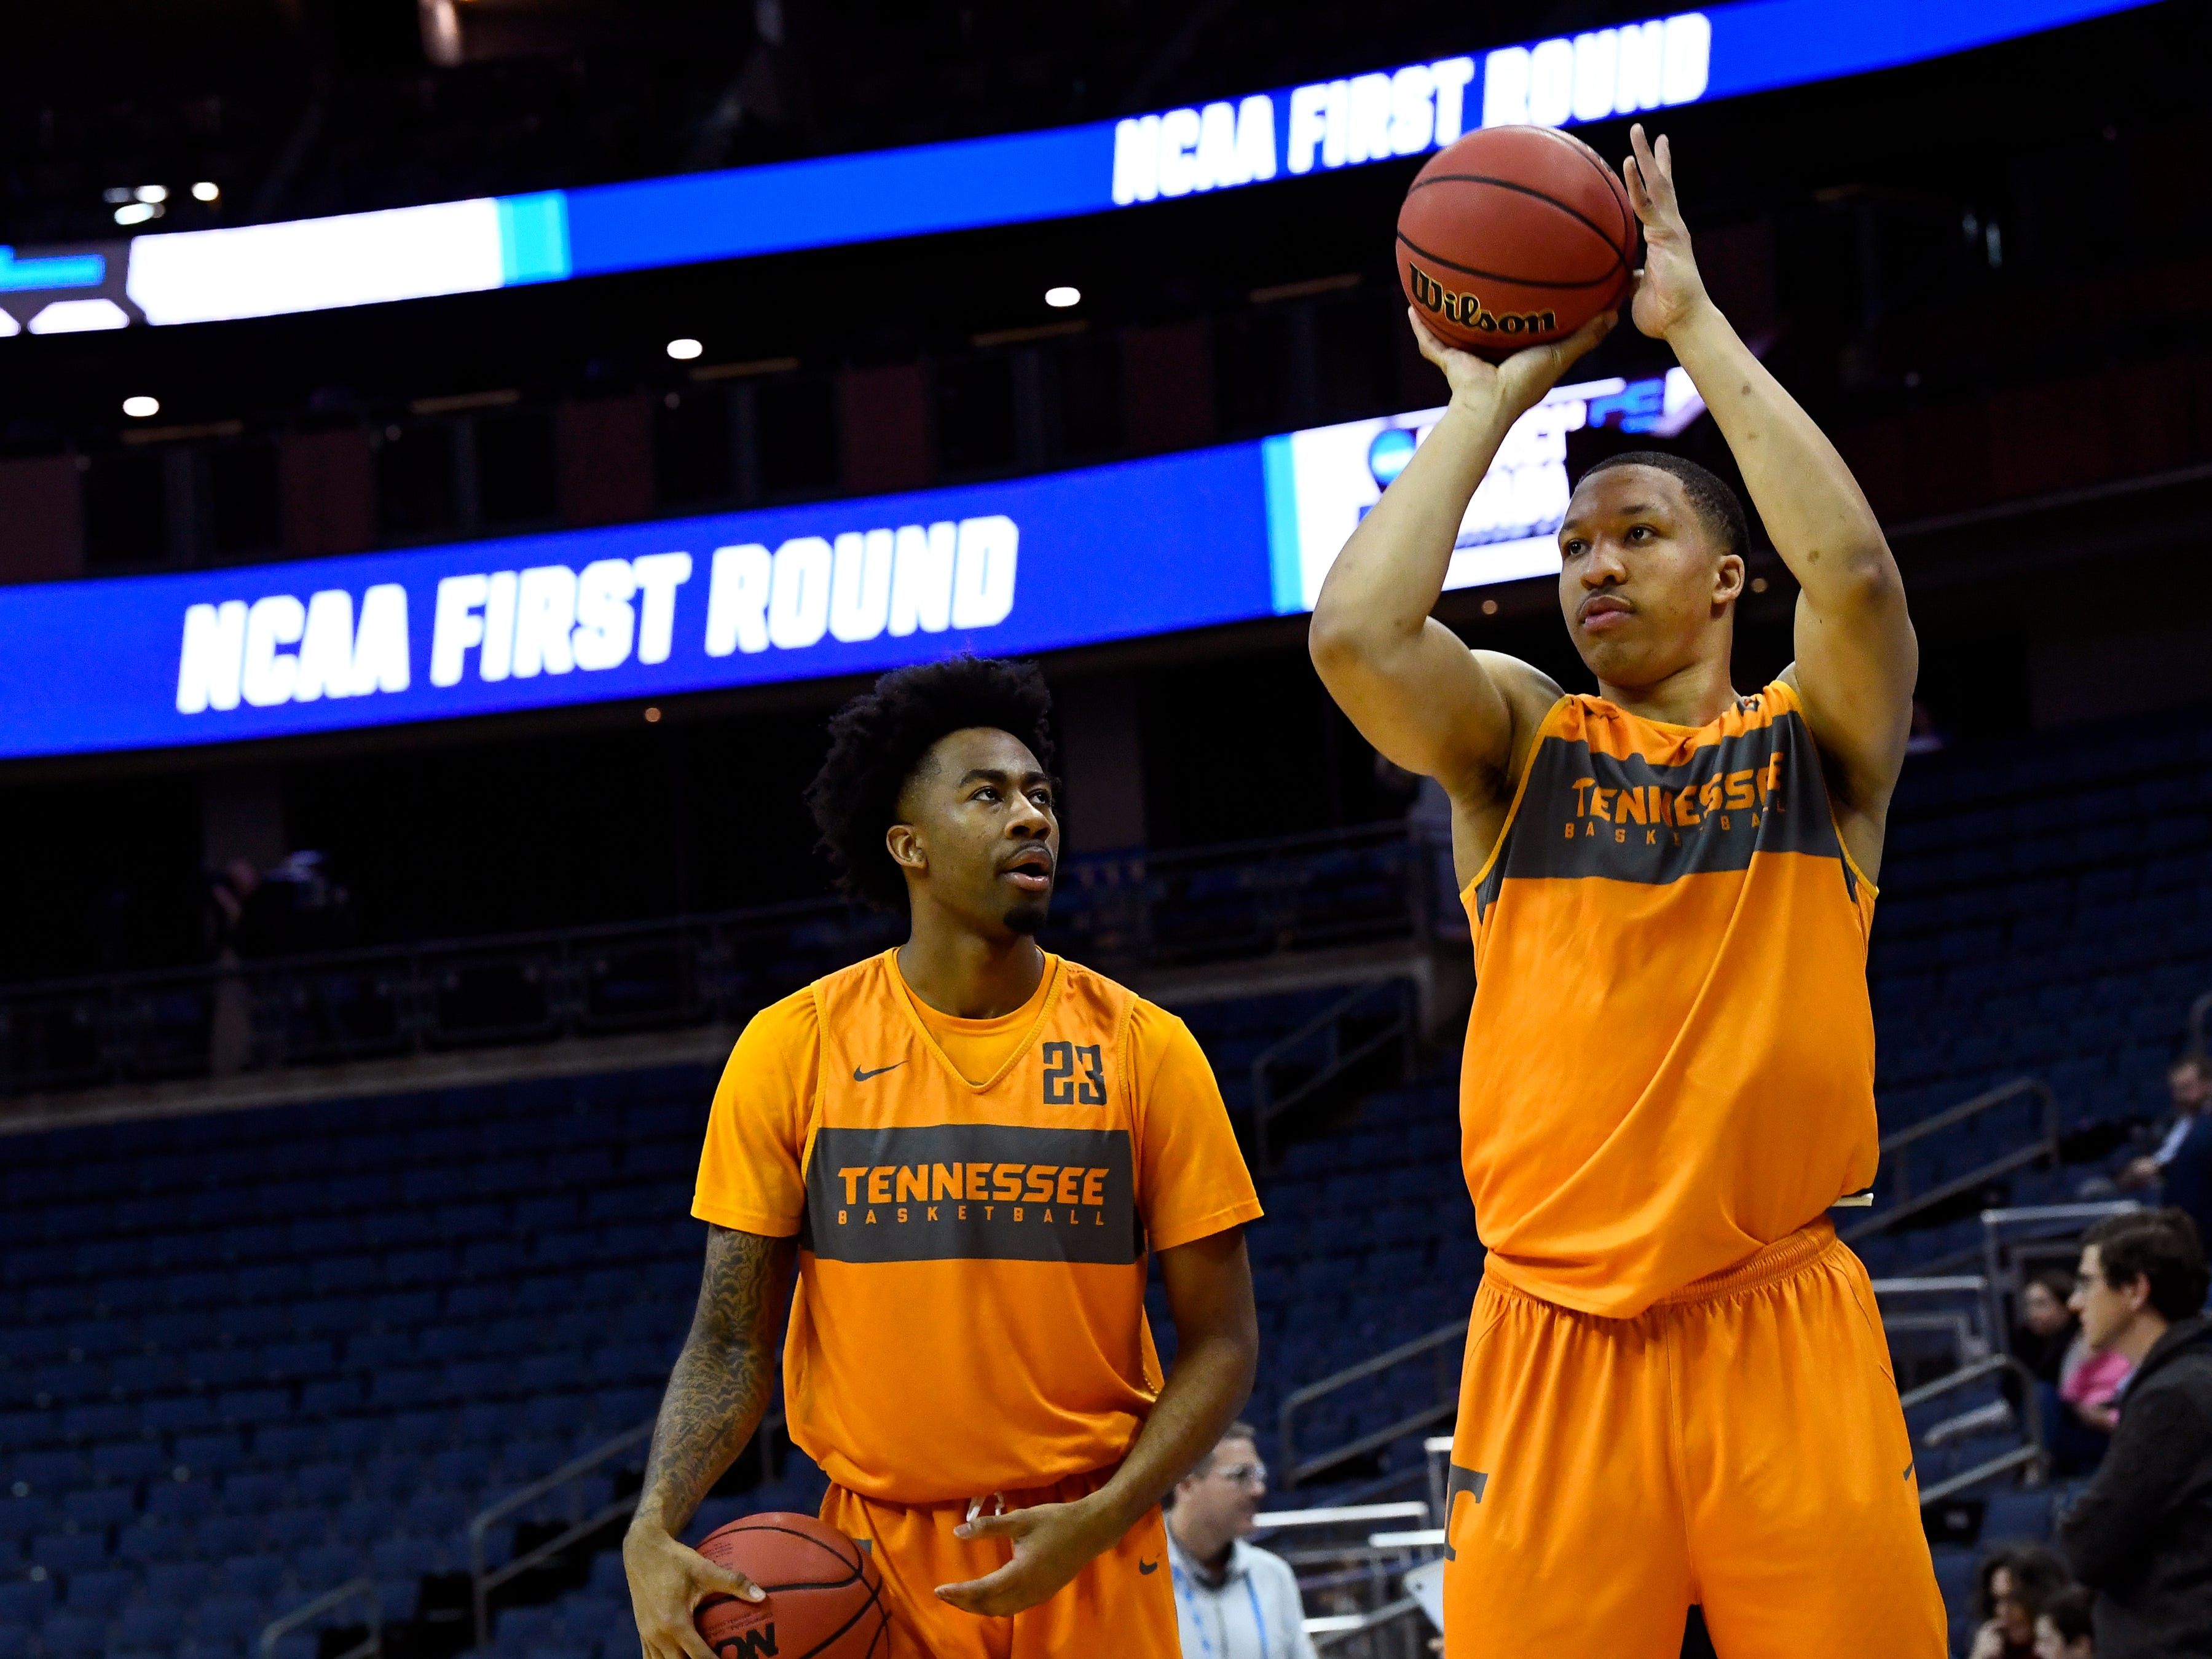 Tennessee guard Jordan Bowden (23) watches as Tennessee forward Grant Williams (2) shoots the ball during Tennessee's practice on Thursday, March 21, 2019, before their first round NCAA Tournament game against Colgate at Nationwide Arena in Columbus, Ohio.